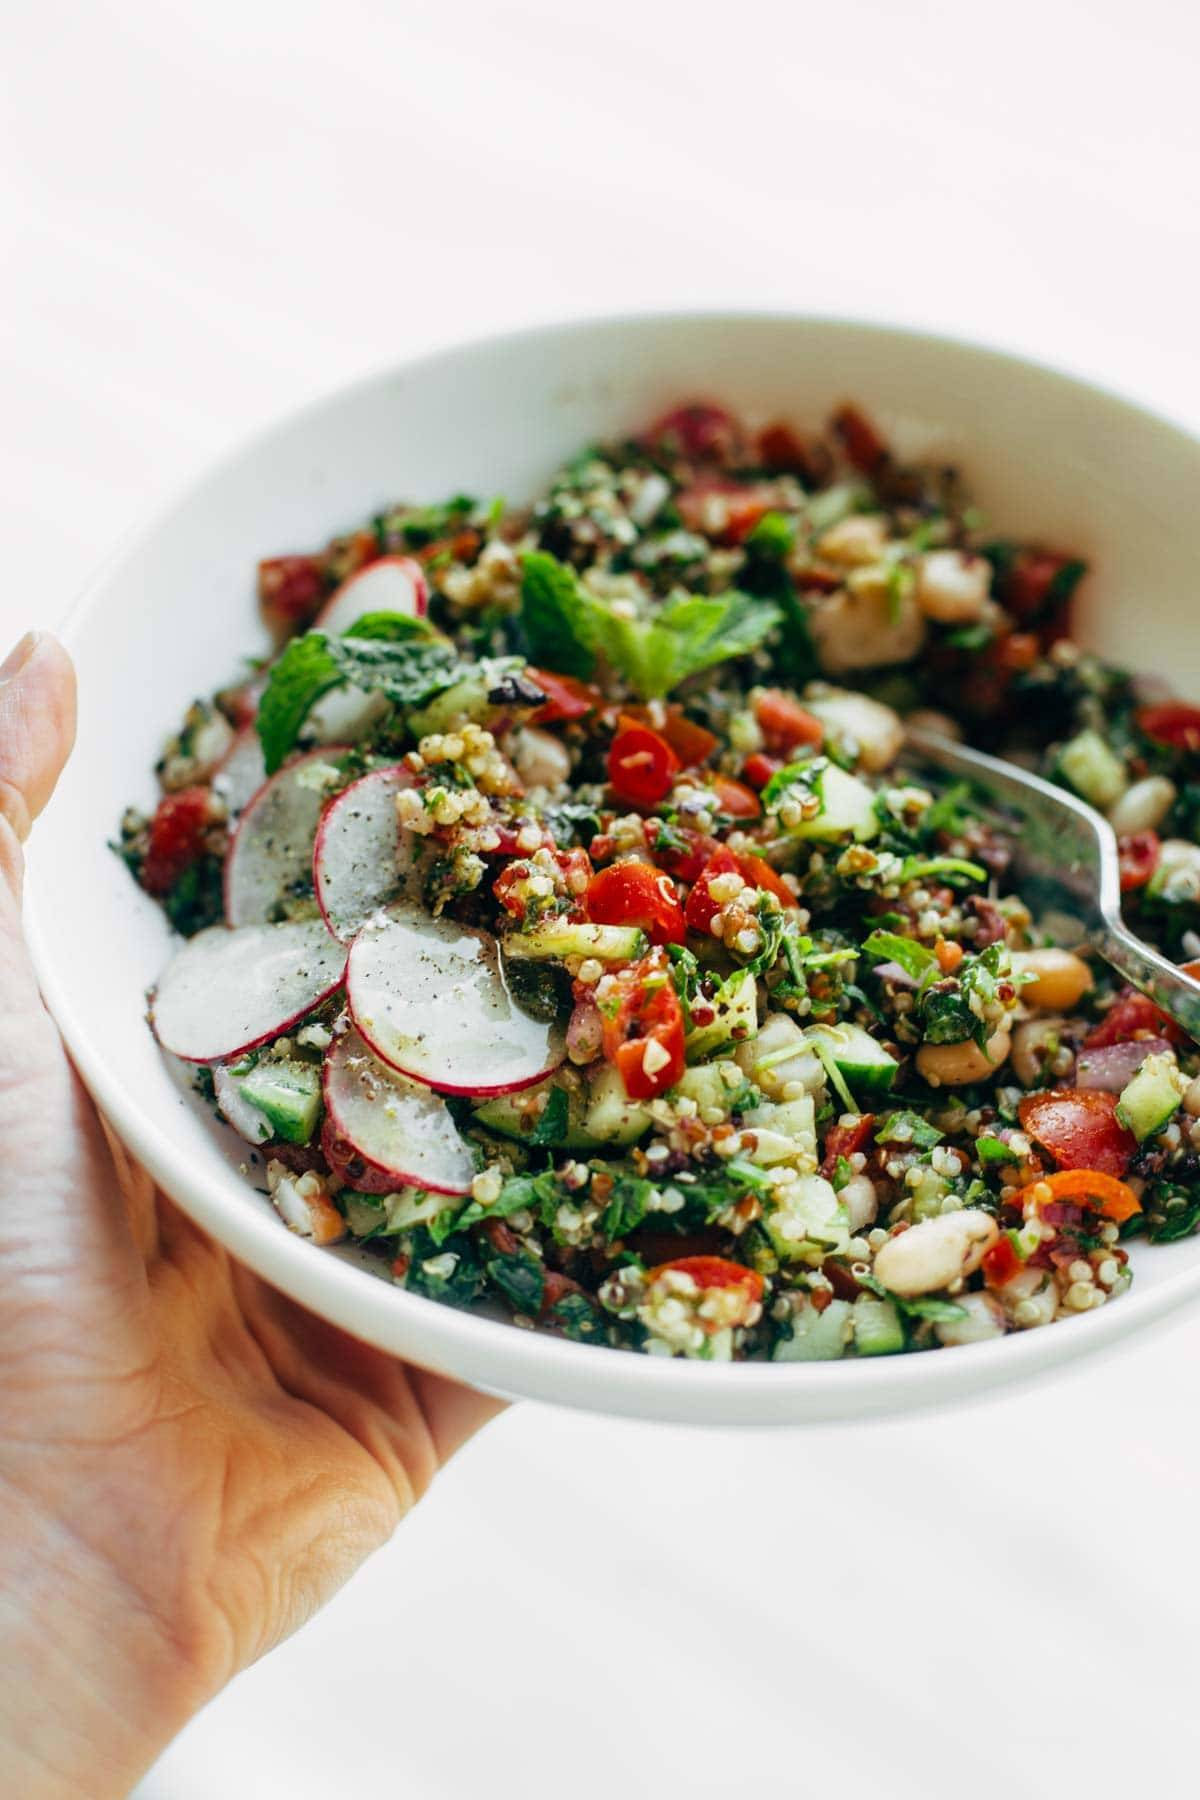 Chopped Greek Salad - clean eating with TONS of flavor! cucumbers, tomato, red onion, mint, parsley, quinoa, and a lemon olive oil drizzle! vegan, vegetarian.   pinchofyum.com